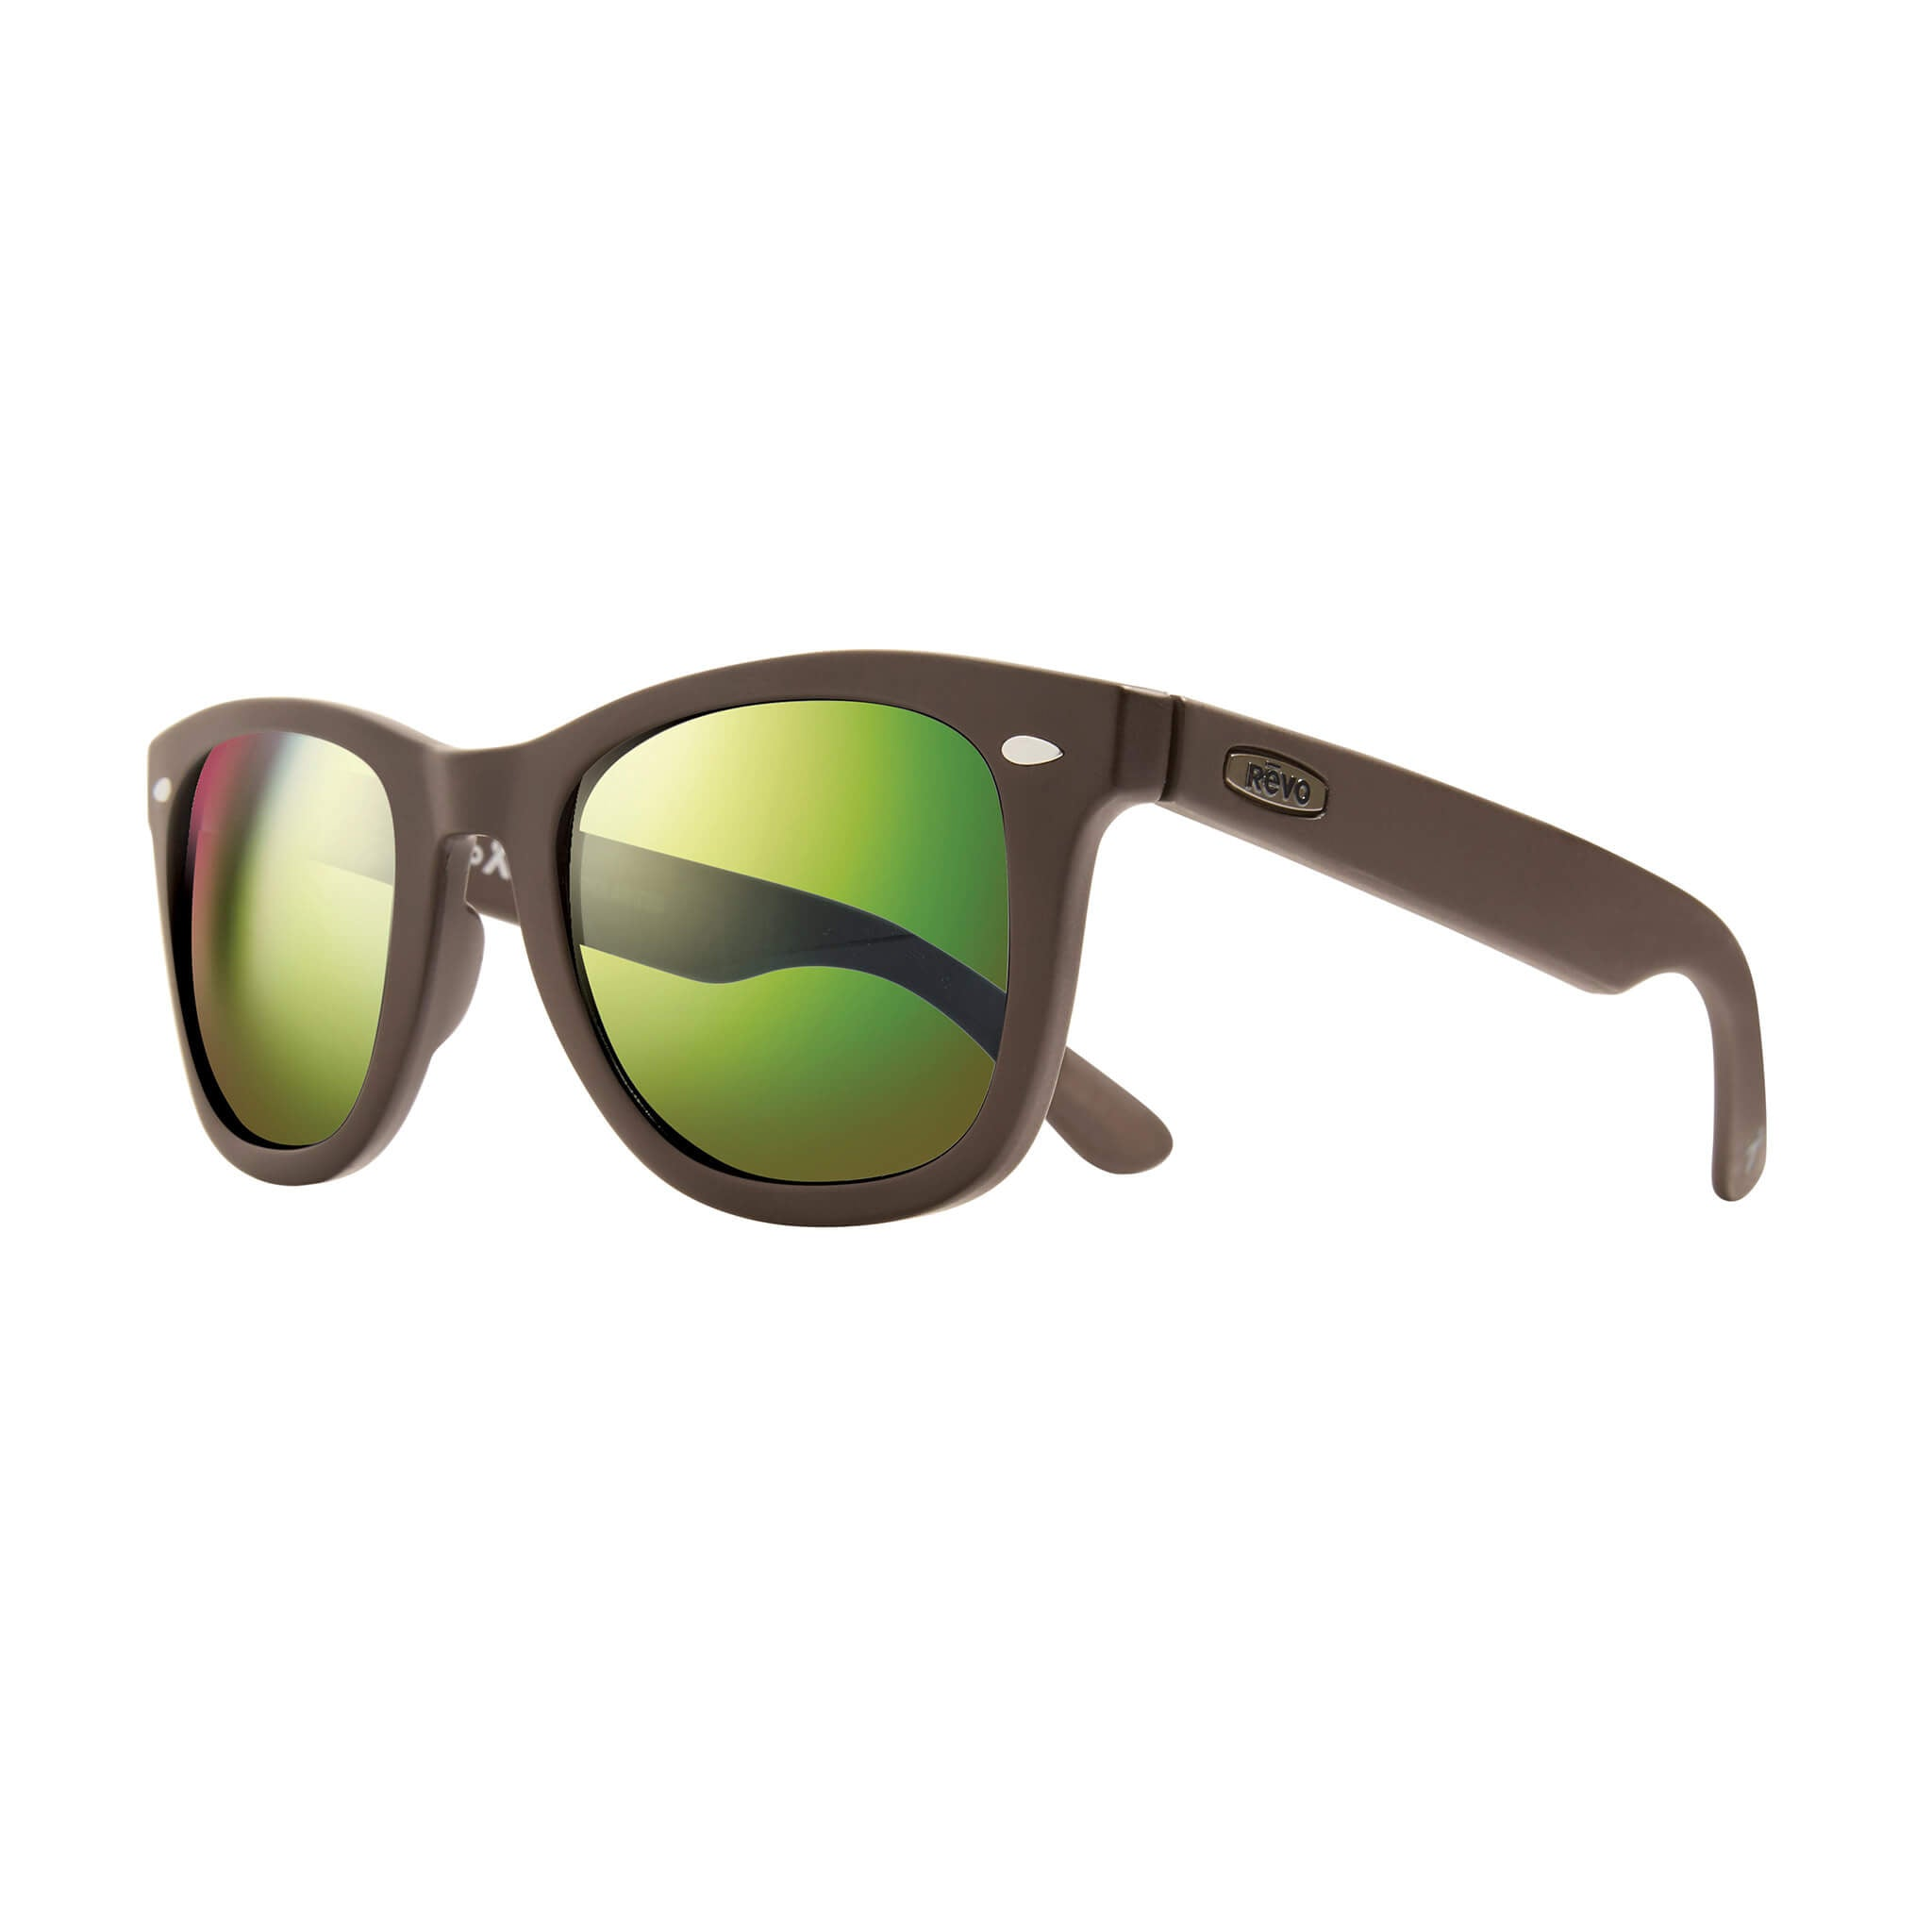 Forge Matte brown + green water lens:Side view of Bear Grylls Revo Brown with Green Water lens sunglasses